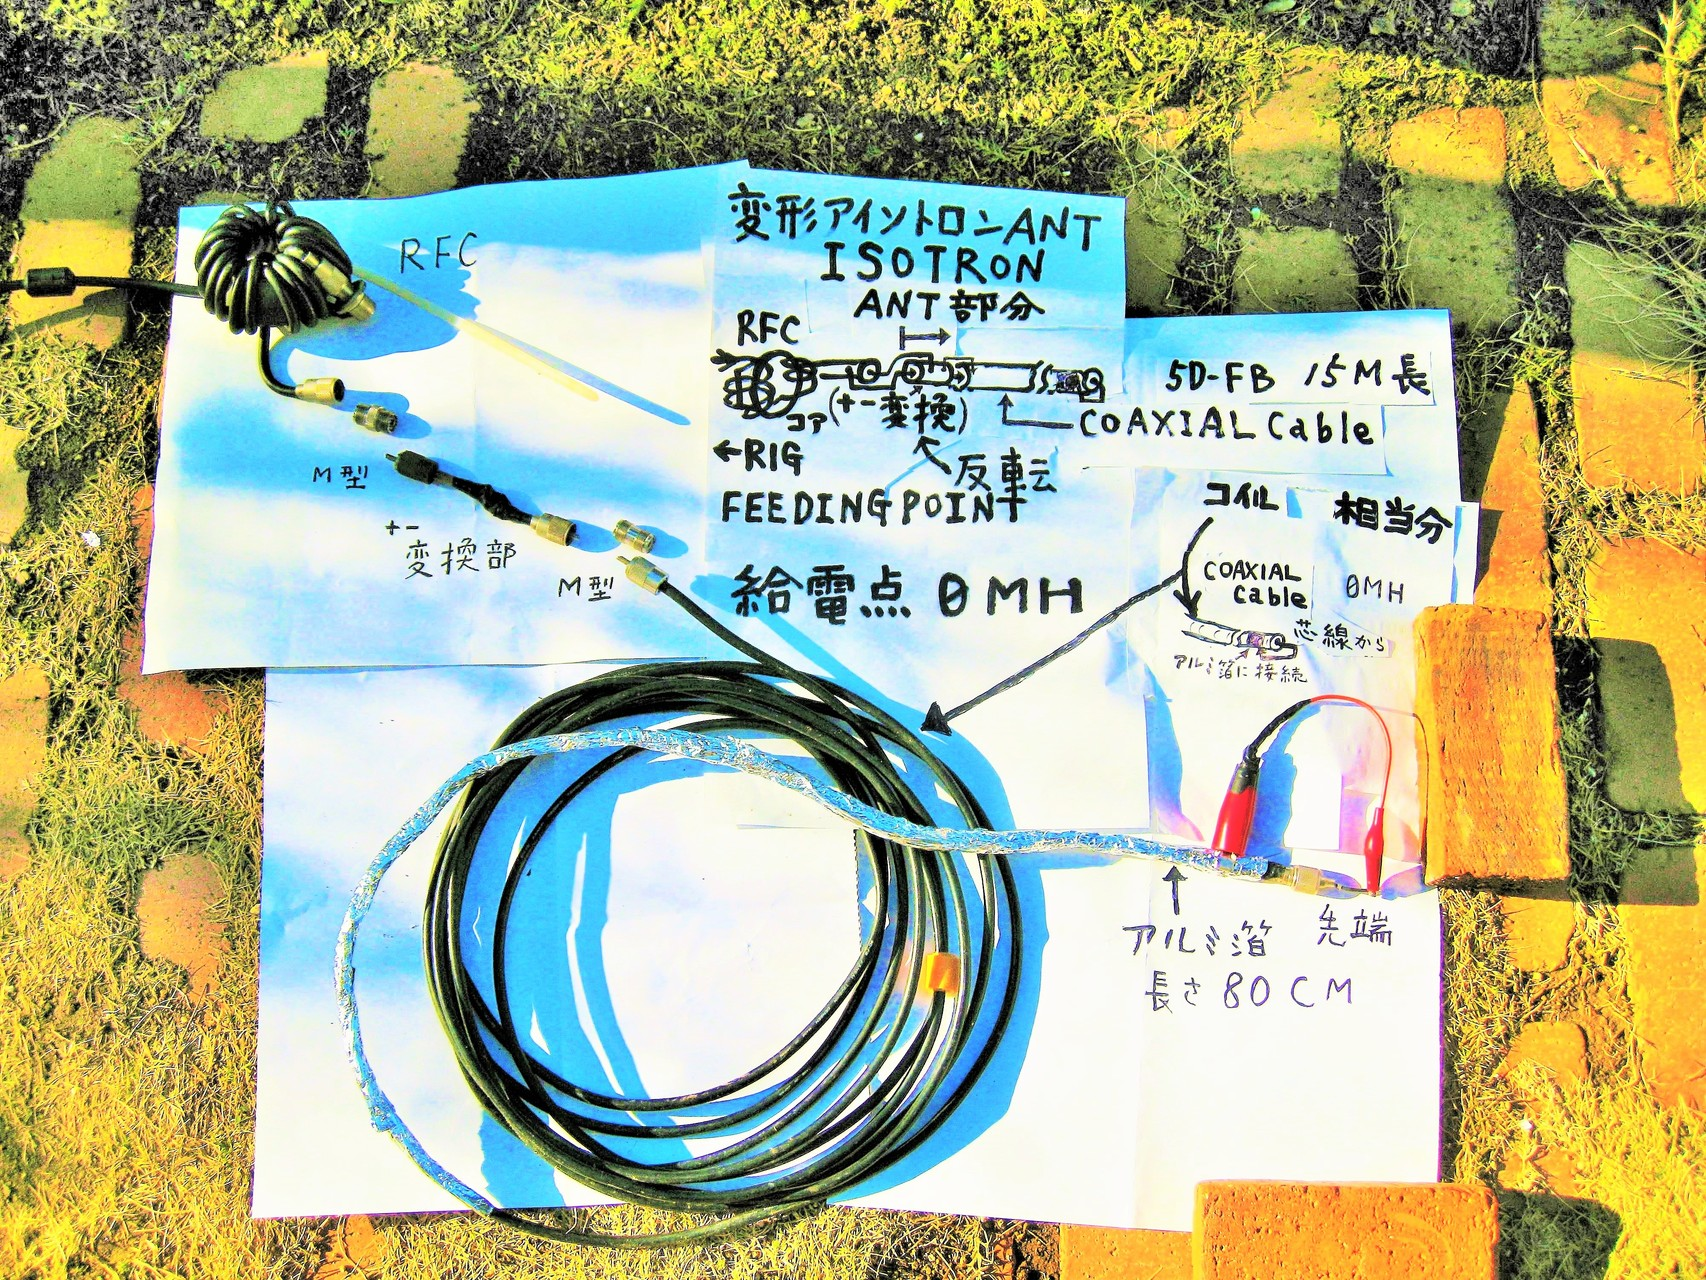 0mH/5D-FB等15mCOAXIAL Cable±反転同軸先端芯線を外被巻きつけアルミ箔に接続:変形アイソトロン(Isotron)ANT